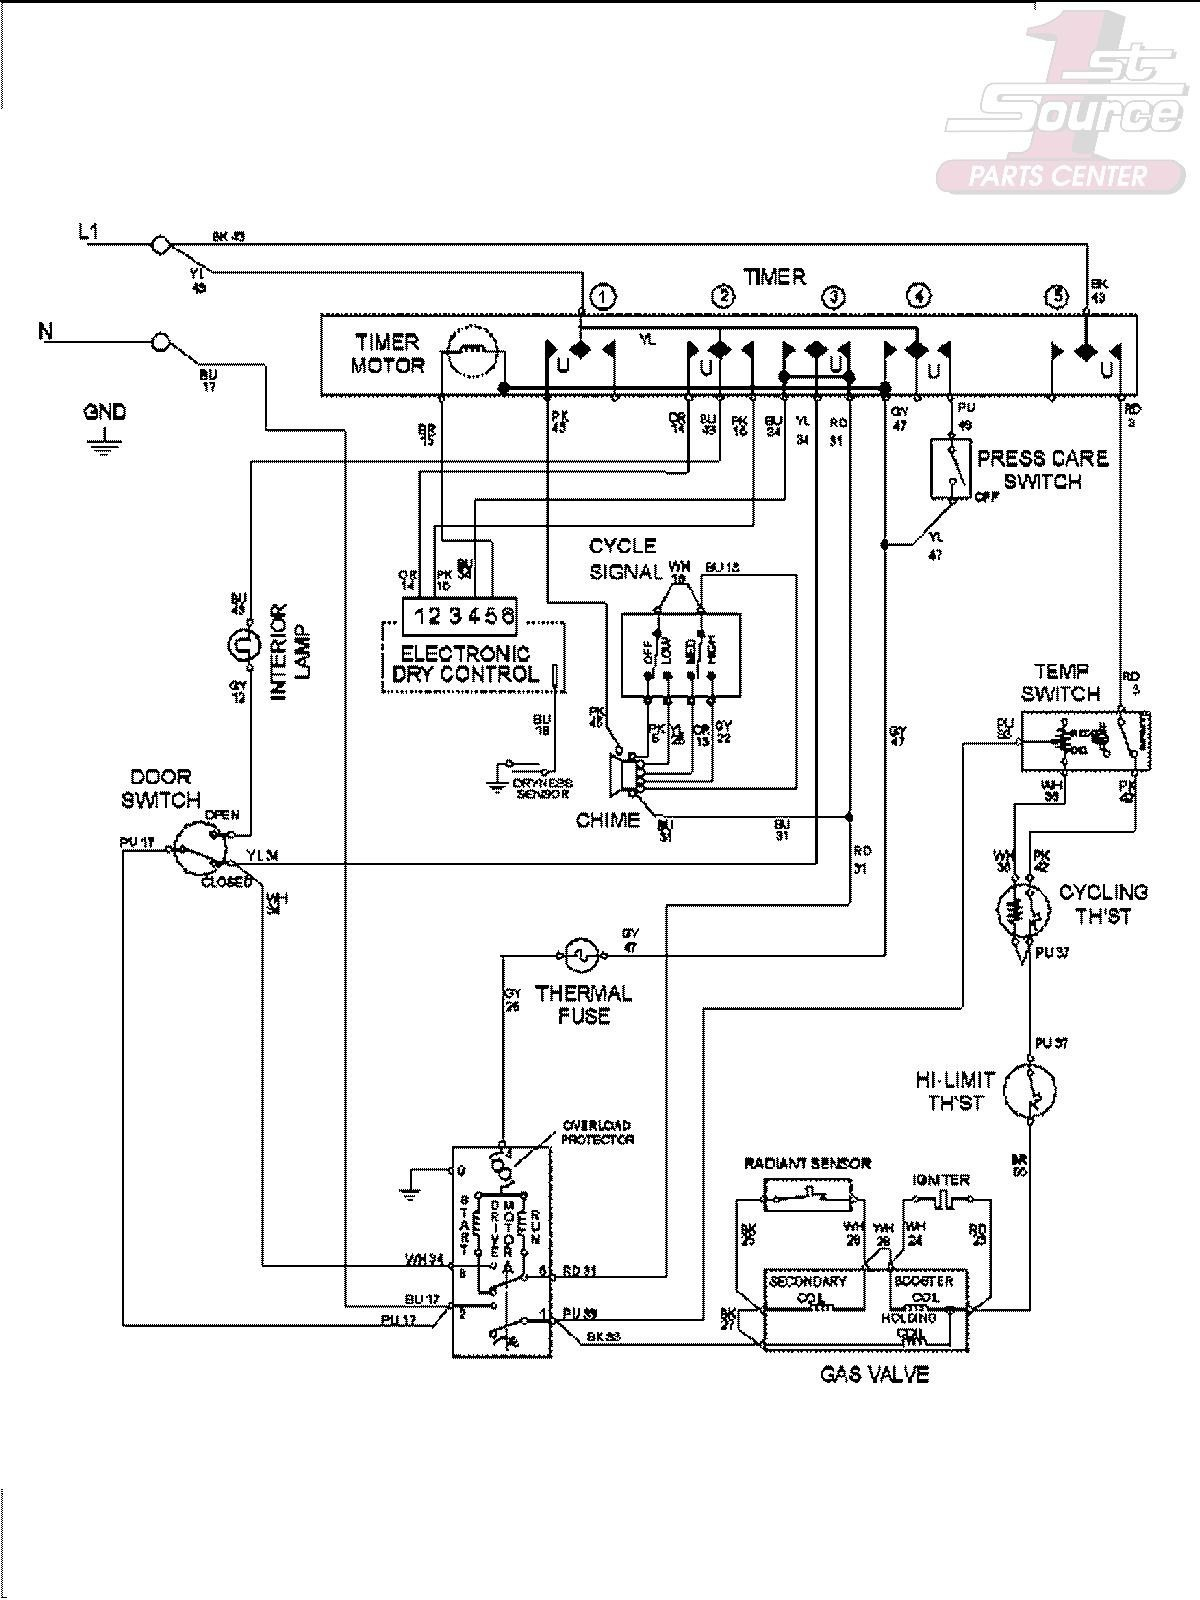 maytag centennial washer wiring diagram Collection-Wiring Diagram For Maytag Centennial Dryer Save Wiring Diagram For A 2-p